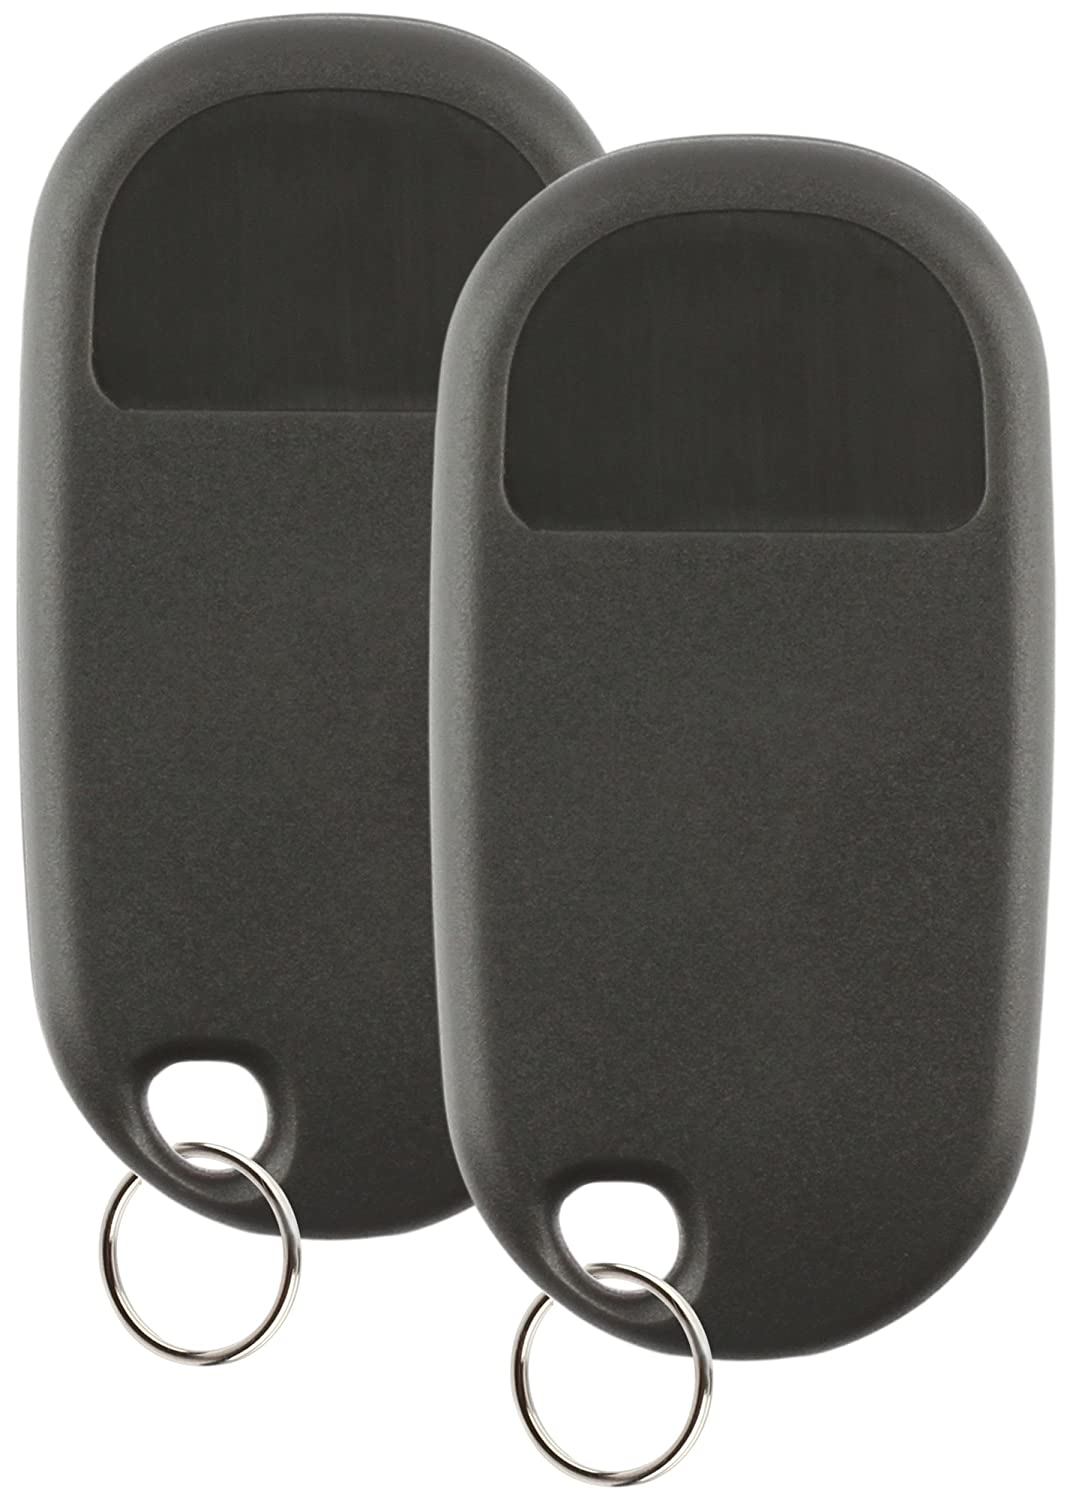 Discount Keyless Replacement Trunk Key Fob Car Remote Compatible with Honda CRV CR-V OUCG8D-344H-A